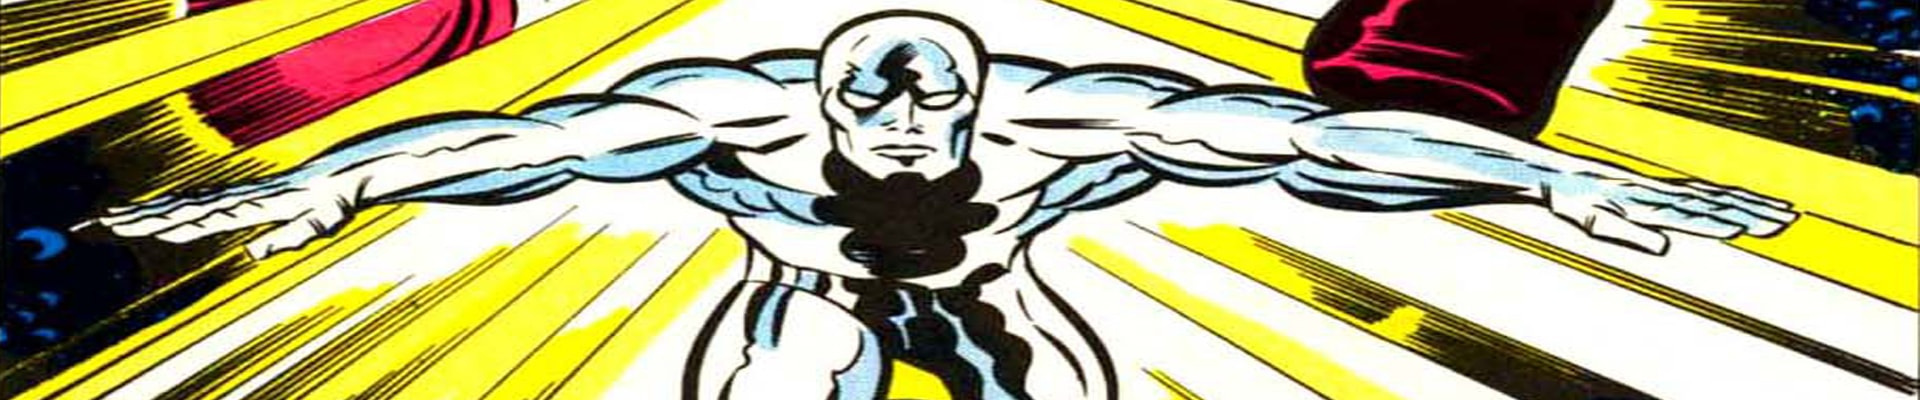 Silver Surfer Experience